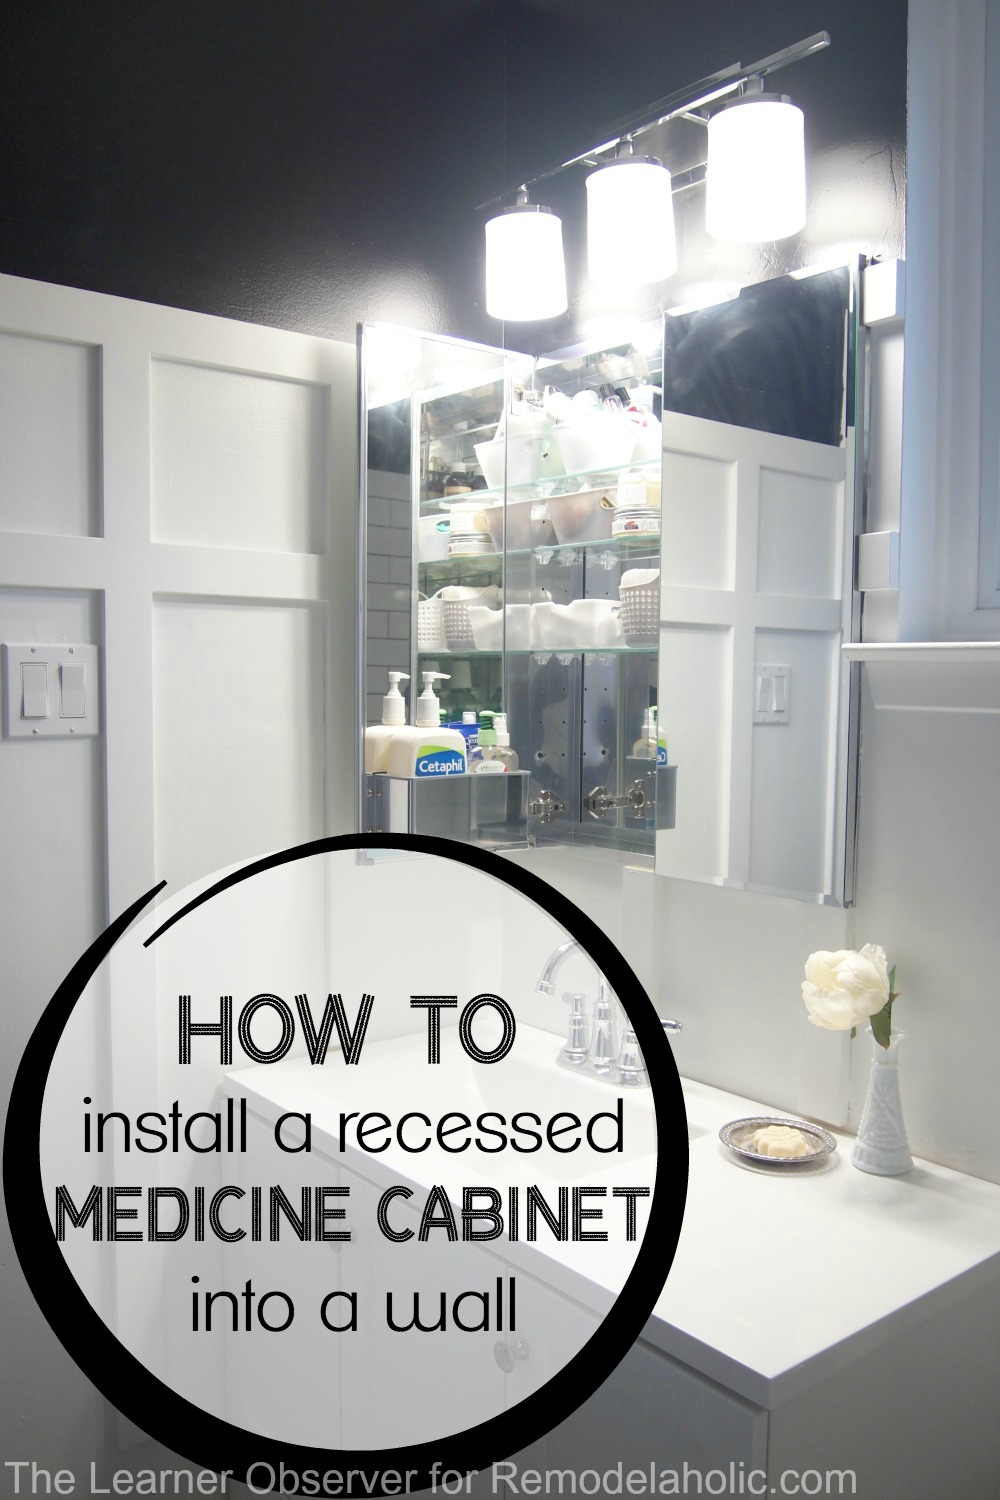 i had no idea it was this easy to install a recessed medicine cabinet this